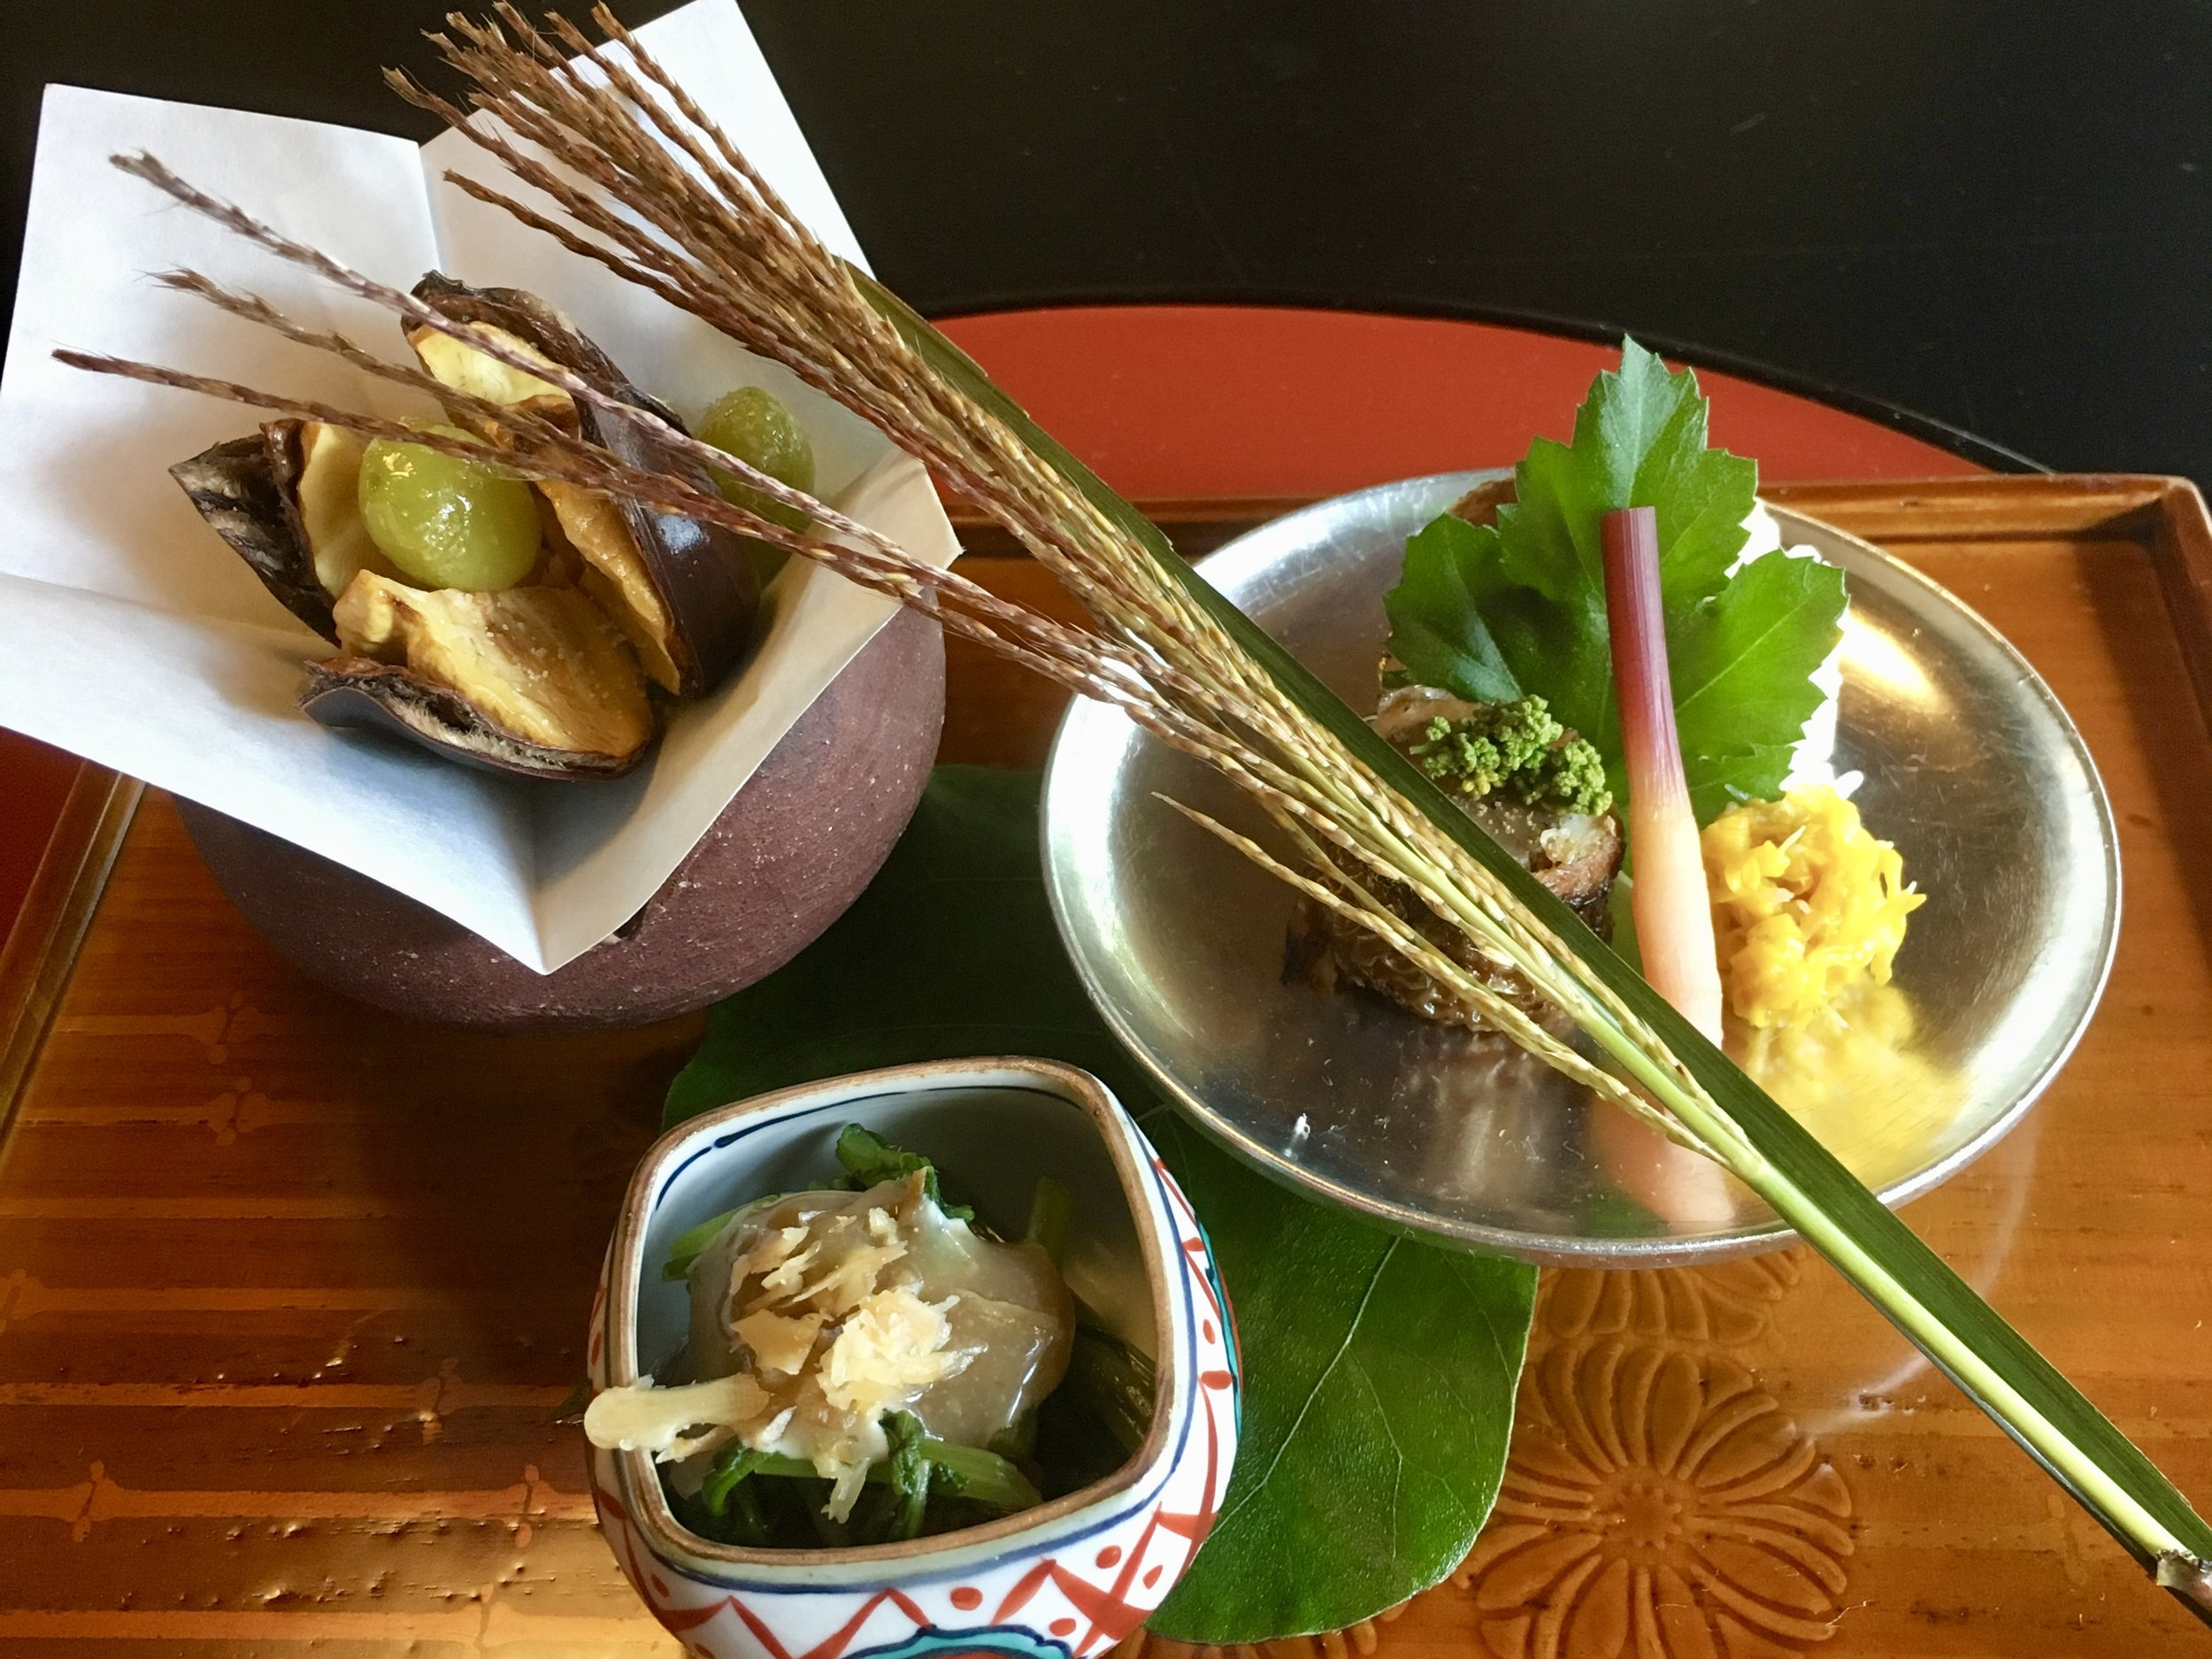 Edible chrysanthemum with gluten cake dressed with walnut sauce, Barracuda sushi, Deep fried chestnut, Simmered burdock and grilled conger eel roll, Ginkgo